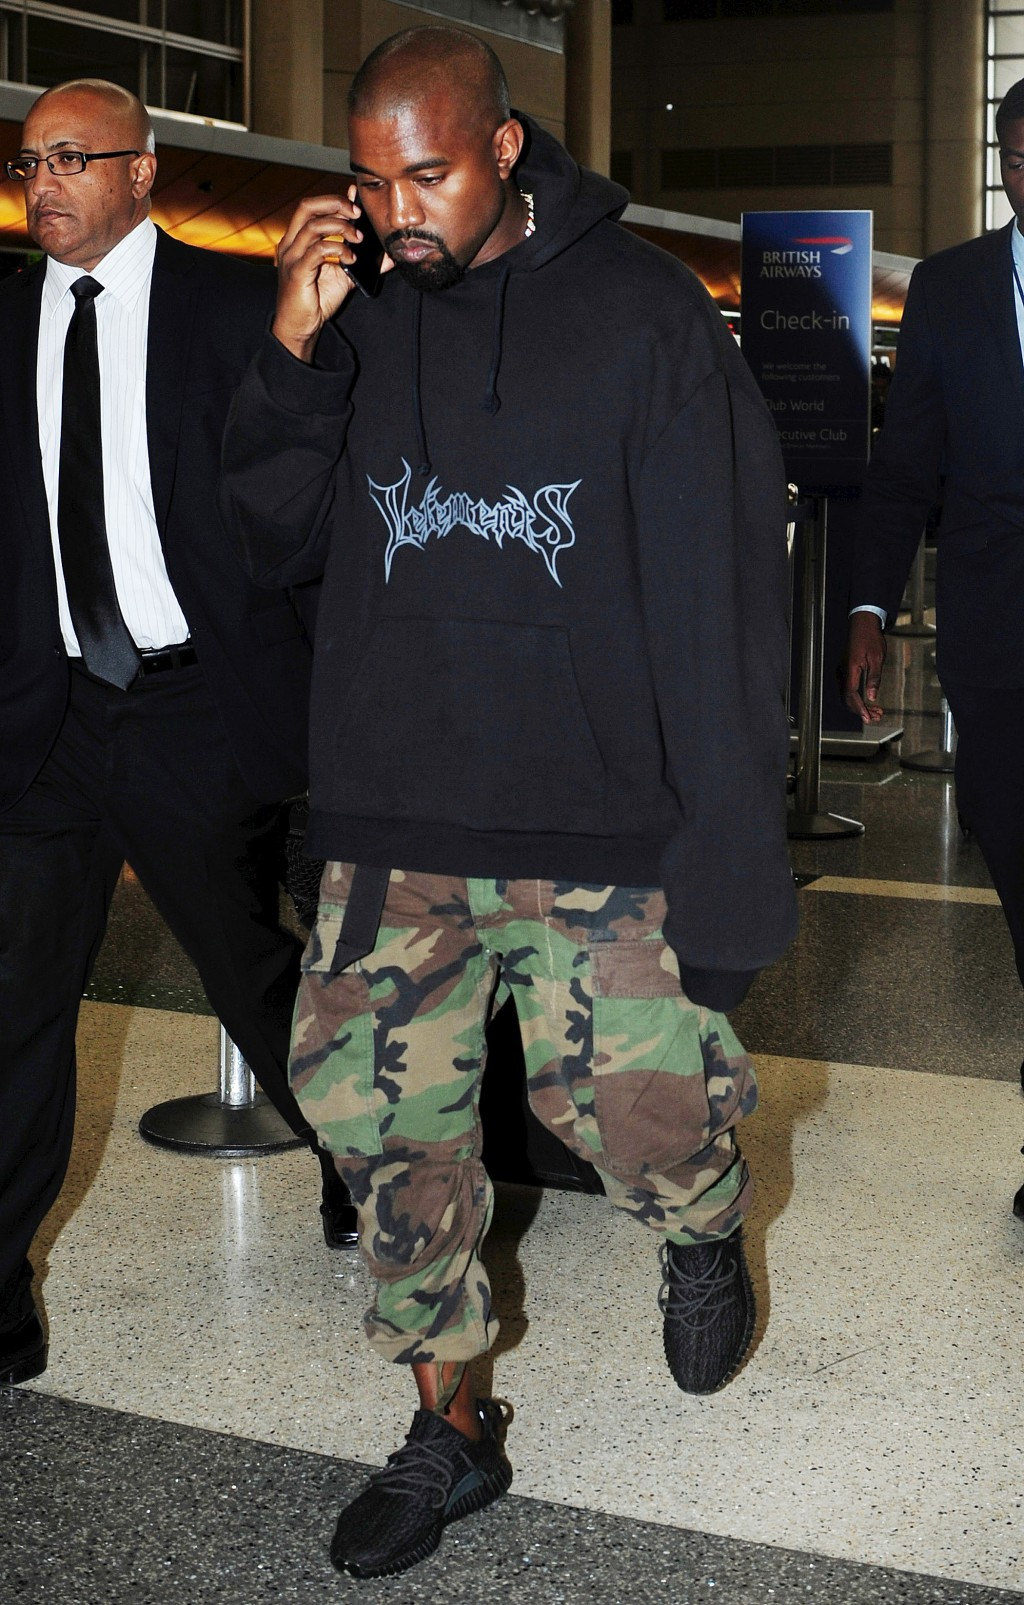 Kanye WestKanye West at LAX airport, Los Angeles, America - 06 Jul 2015 Kanye West departs from the Los Angeles International Airport